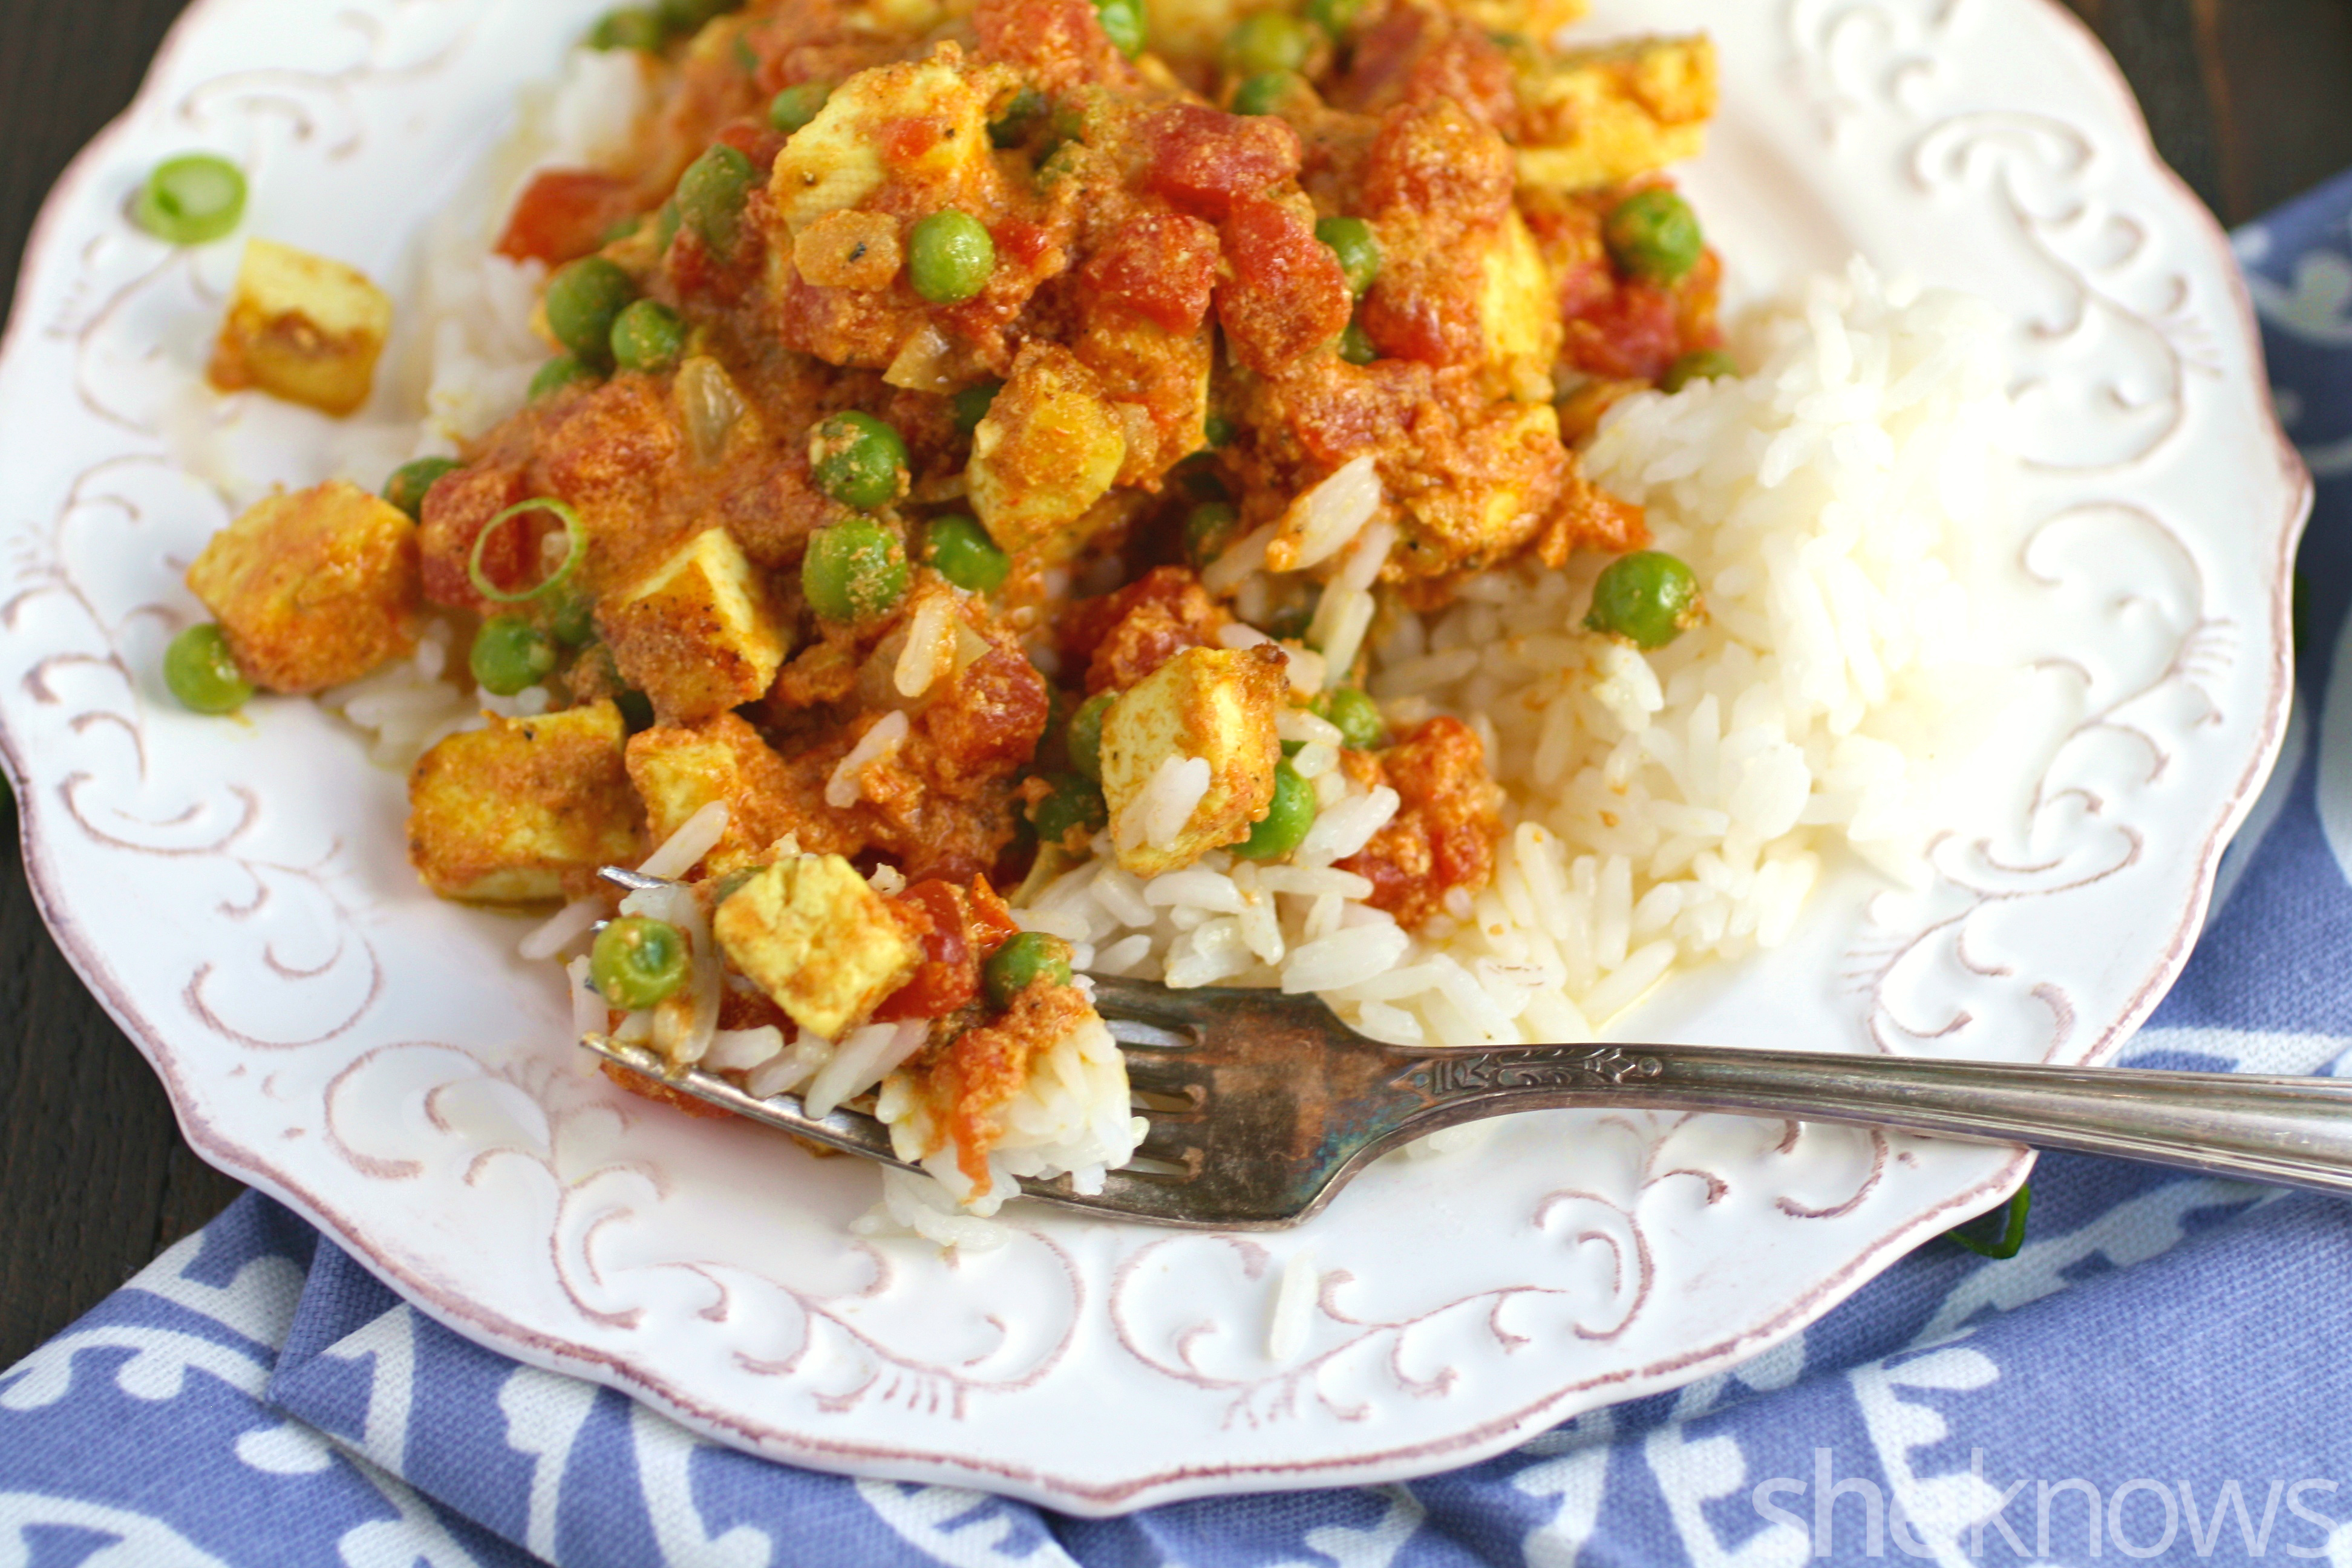 You'll want seconds of this Meatless Monay tofu tikka masala. It's delicious and easy to make.